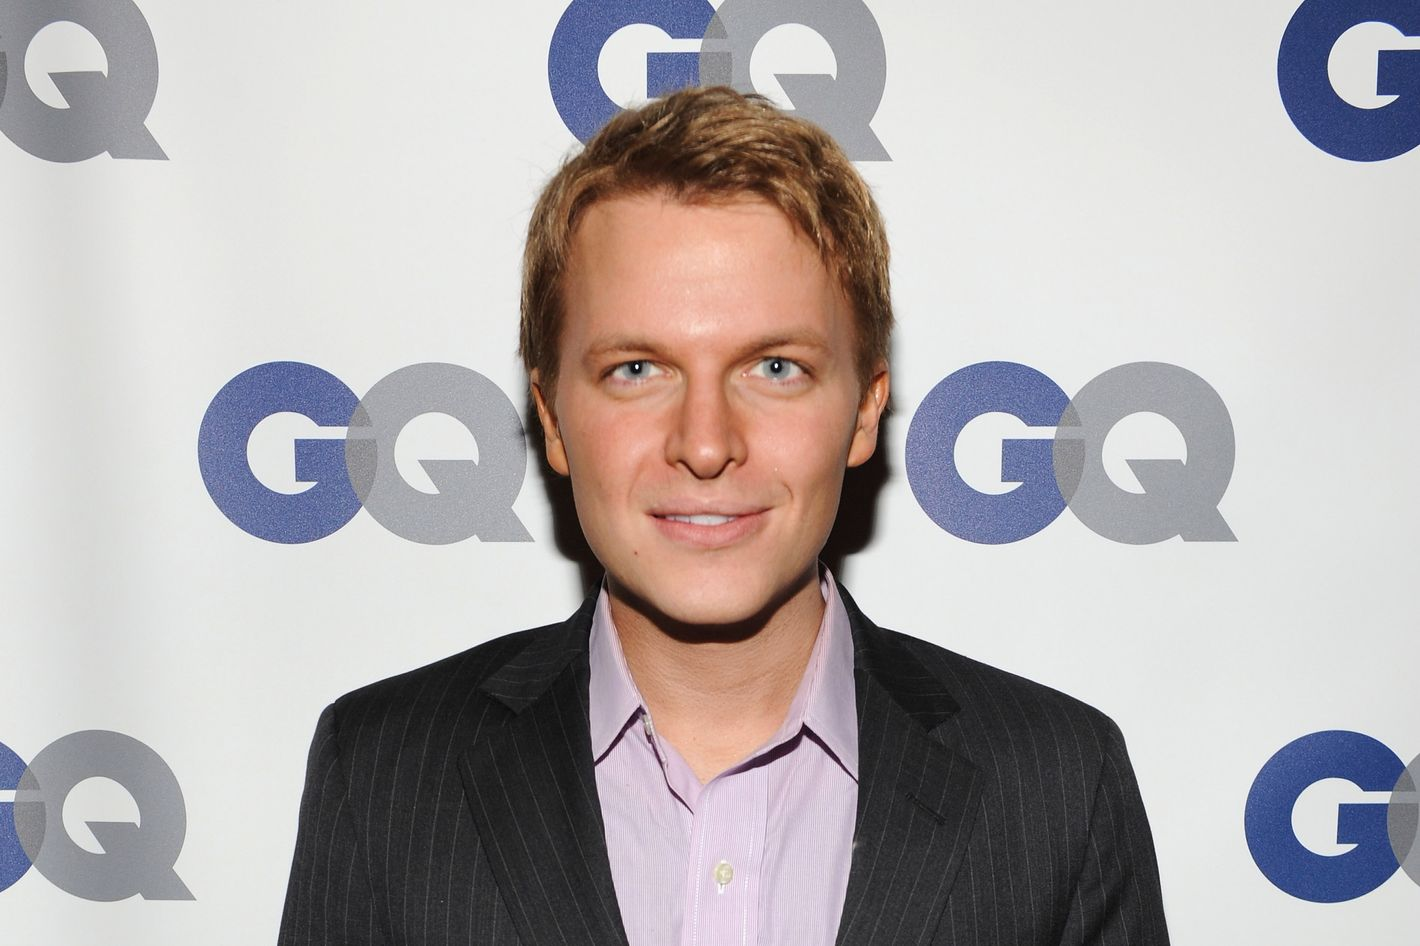 Ronan Farrow attends the GQ Men of the Year dinner on November 11, 2013 in New York City.